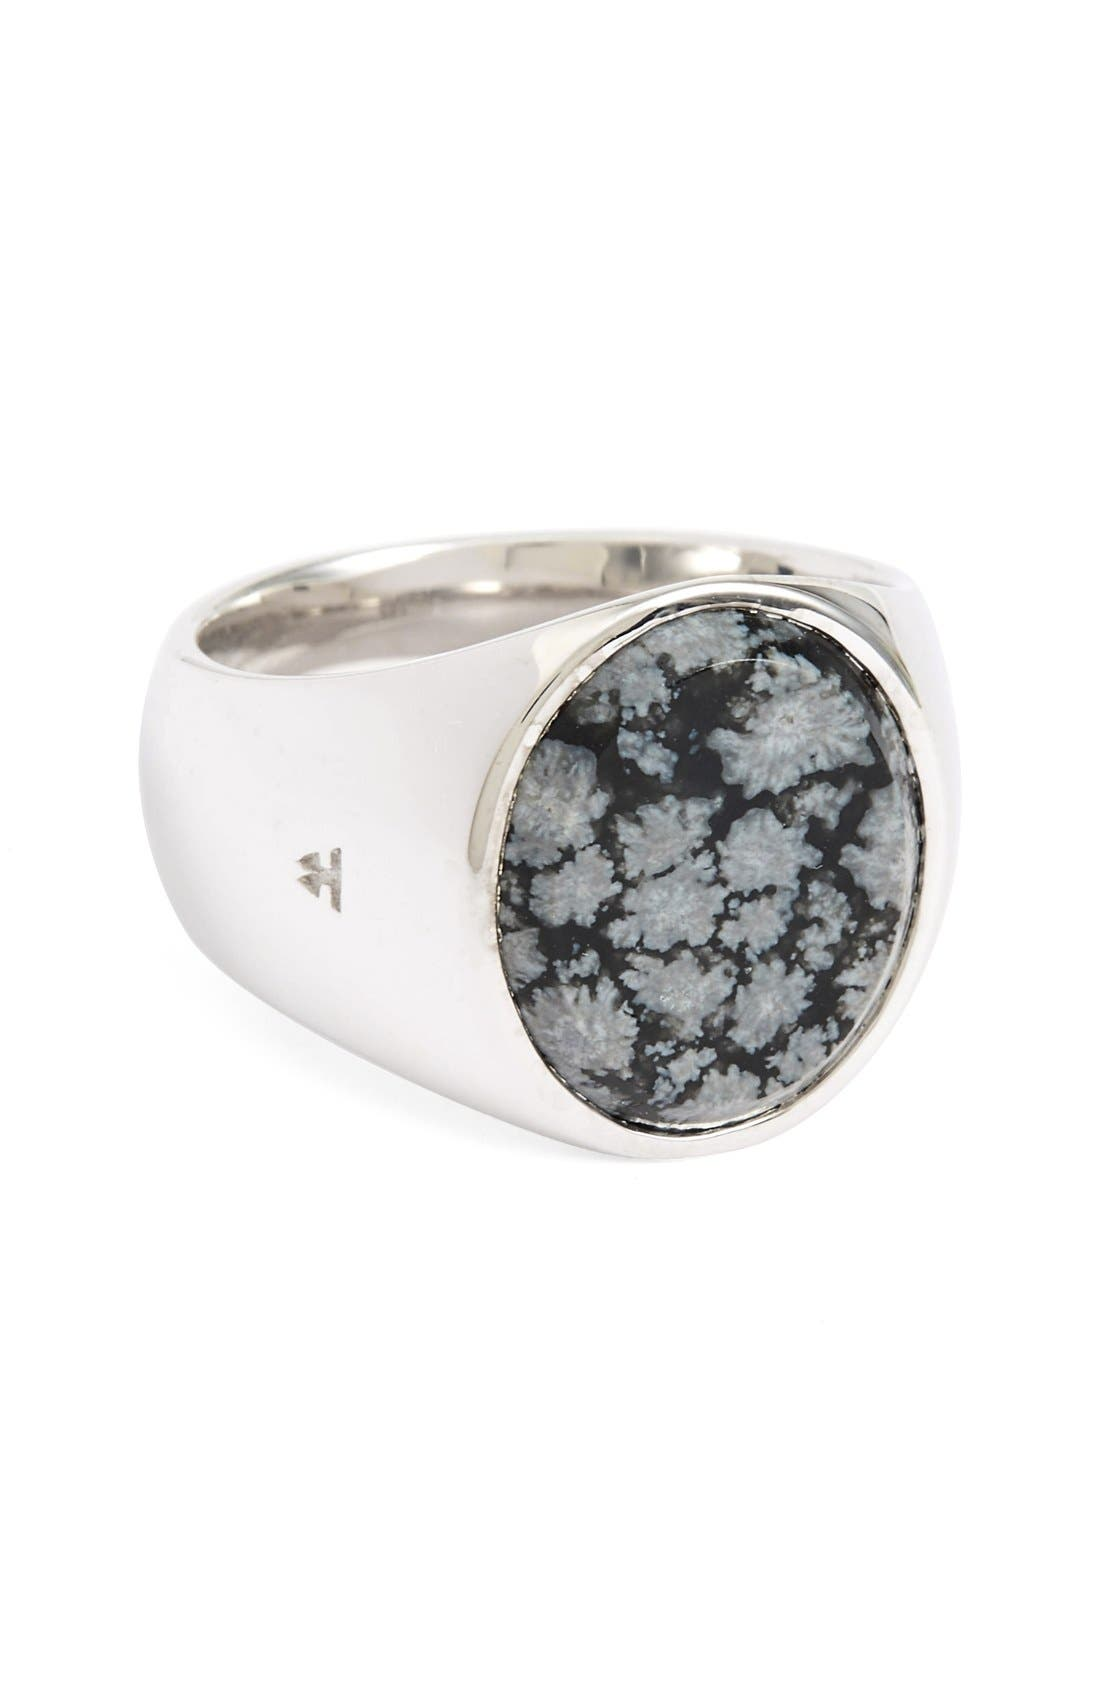 Snowflake Obsidian Oval Signet Ring,                         Main,                         color,